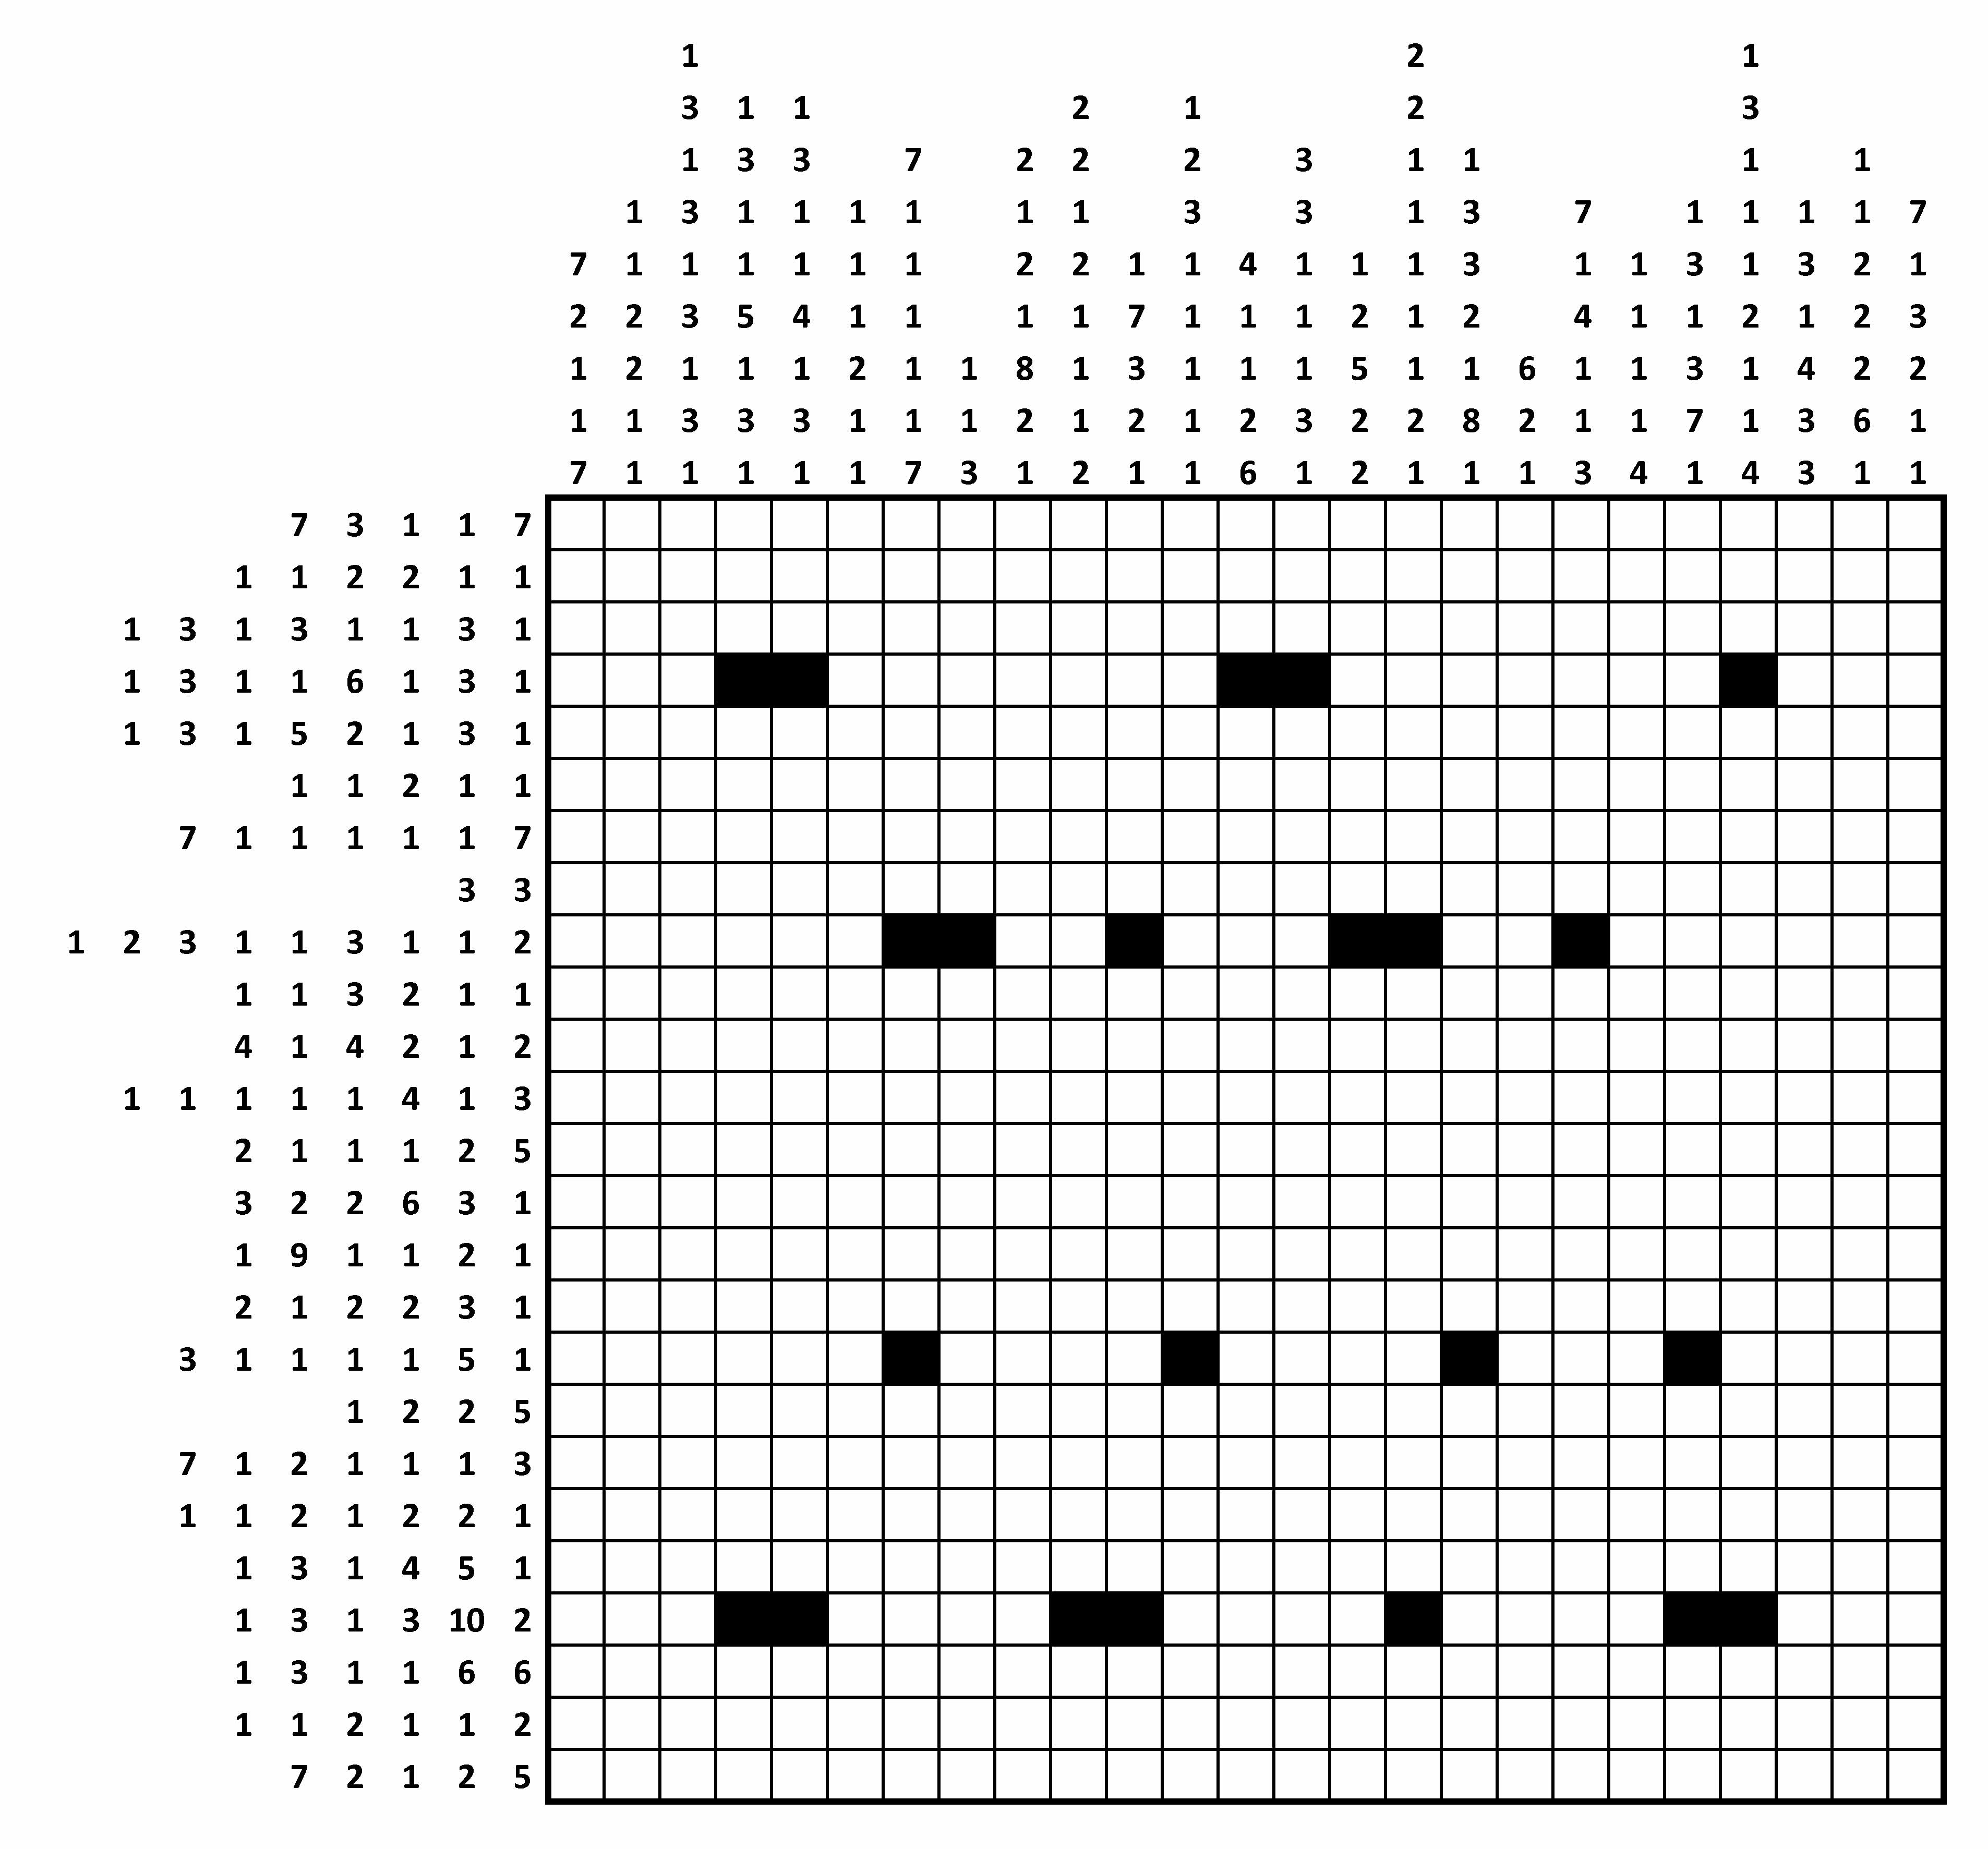 Hundreds Of Thousands Of People Have Tried To Crack This